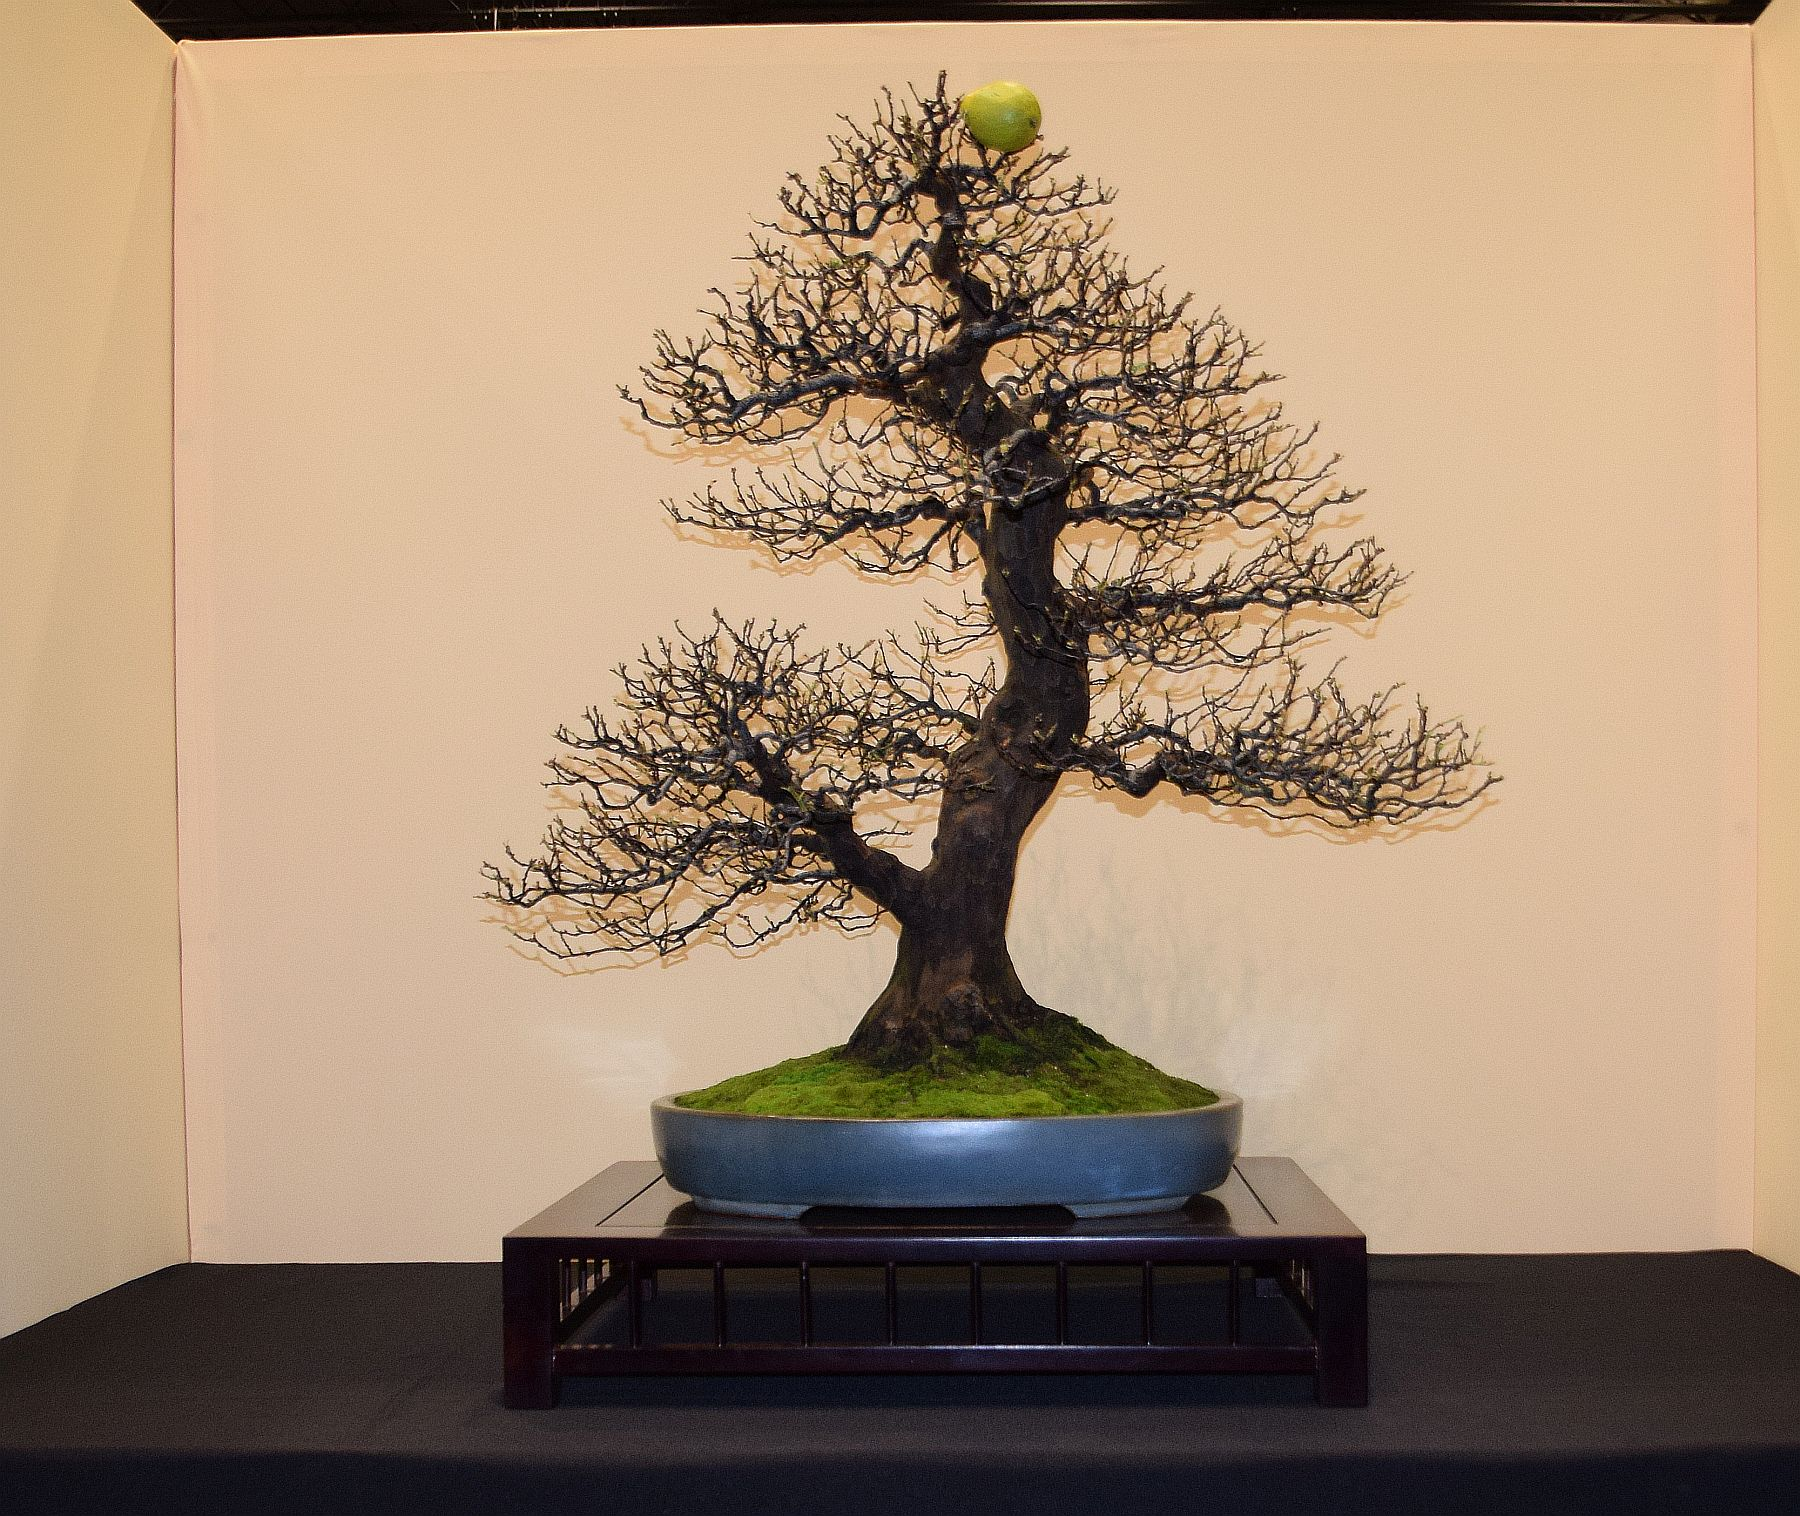 euk-bonsai-ten-2016-jp-polmans-collectie-014